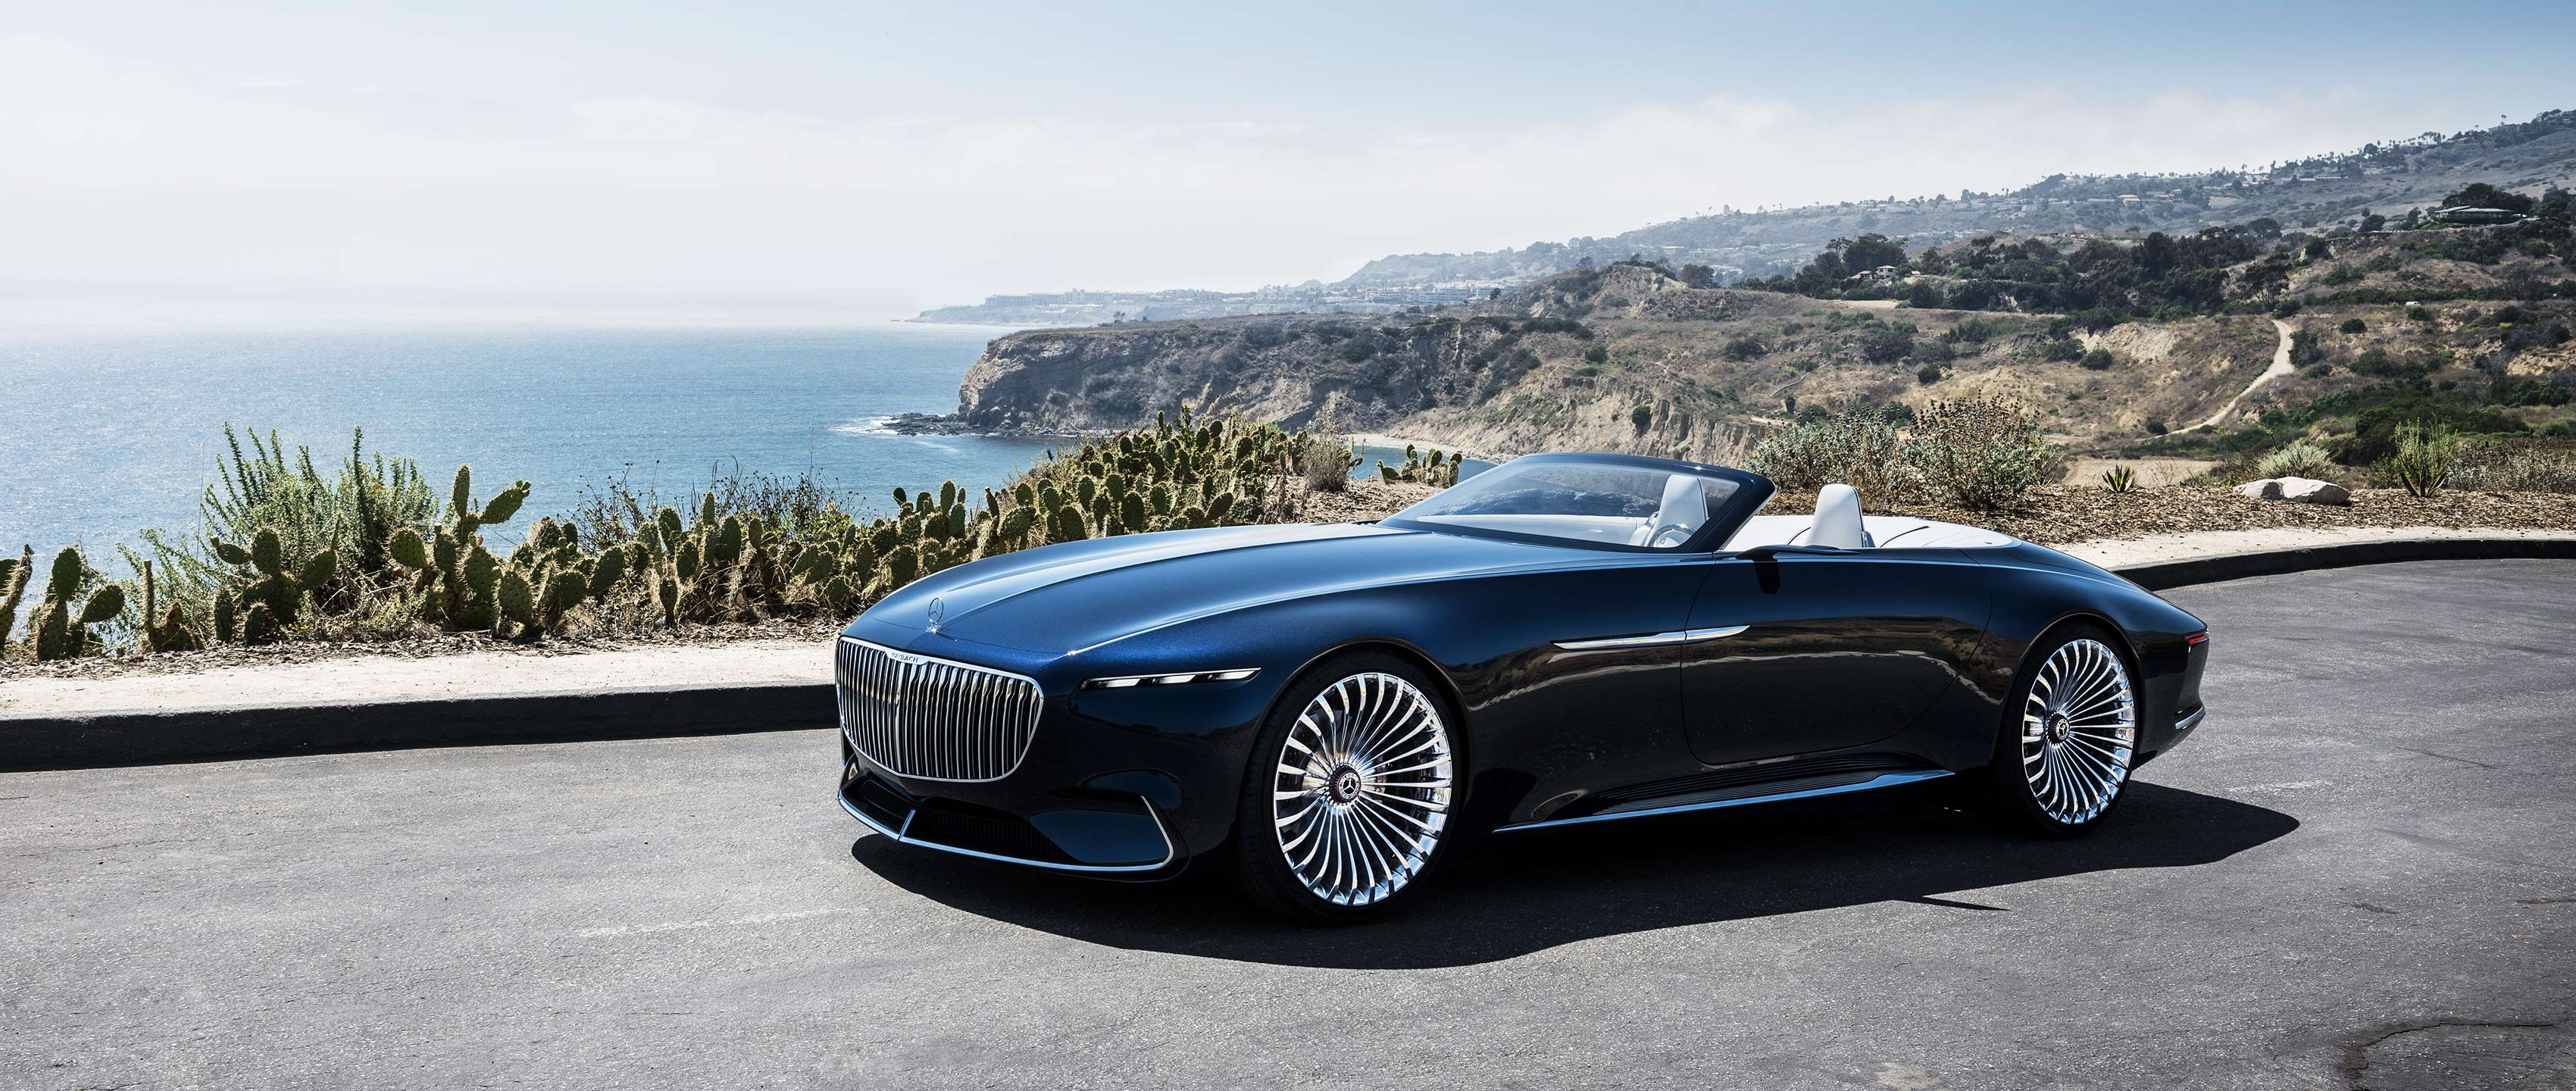 cabriolet maybach